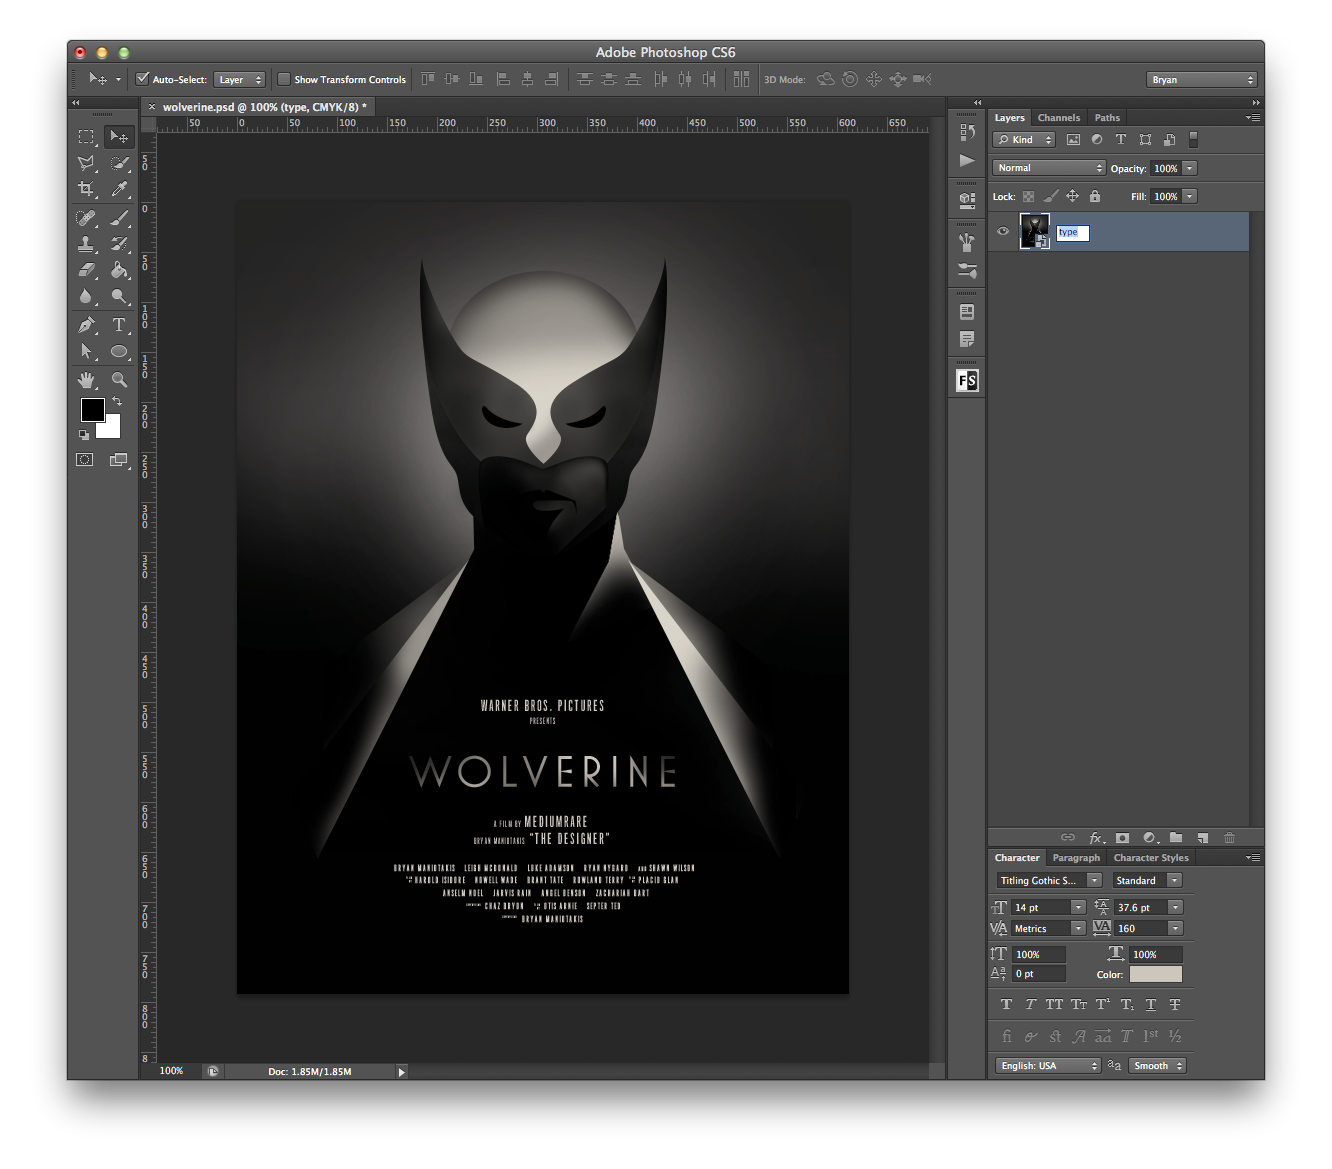 3d poster design tutorial - Olly Moss Movie Poster Style Tutorial In Photoshop